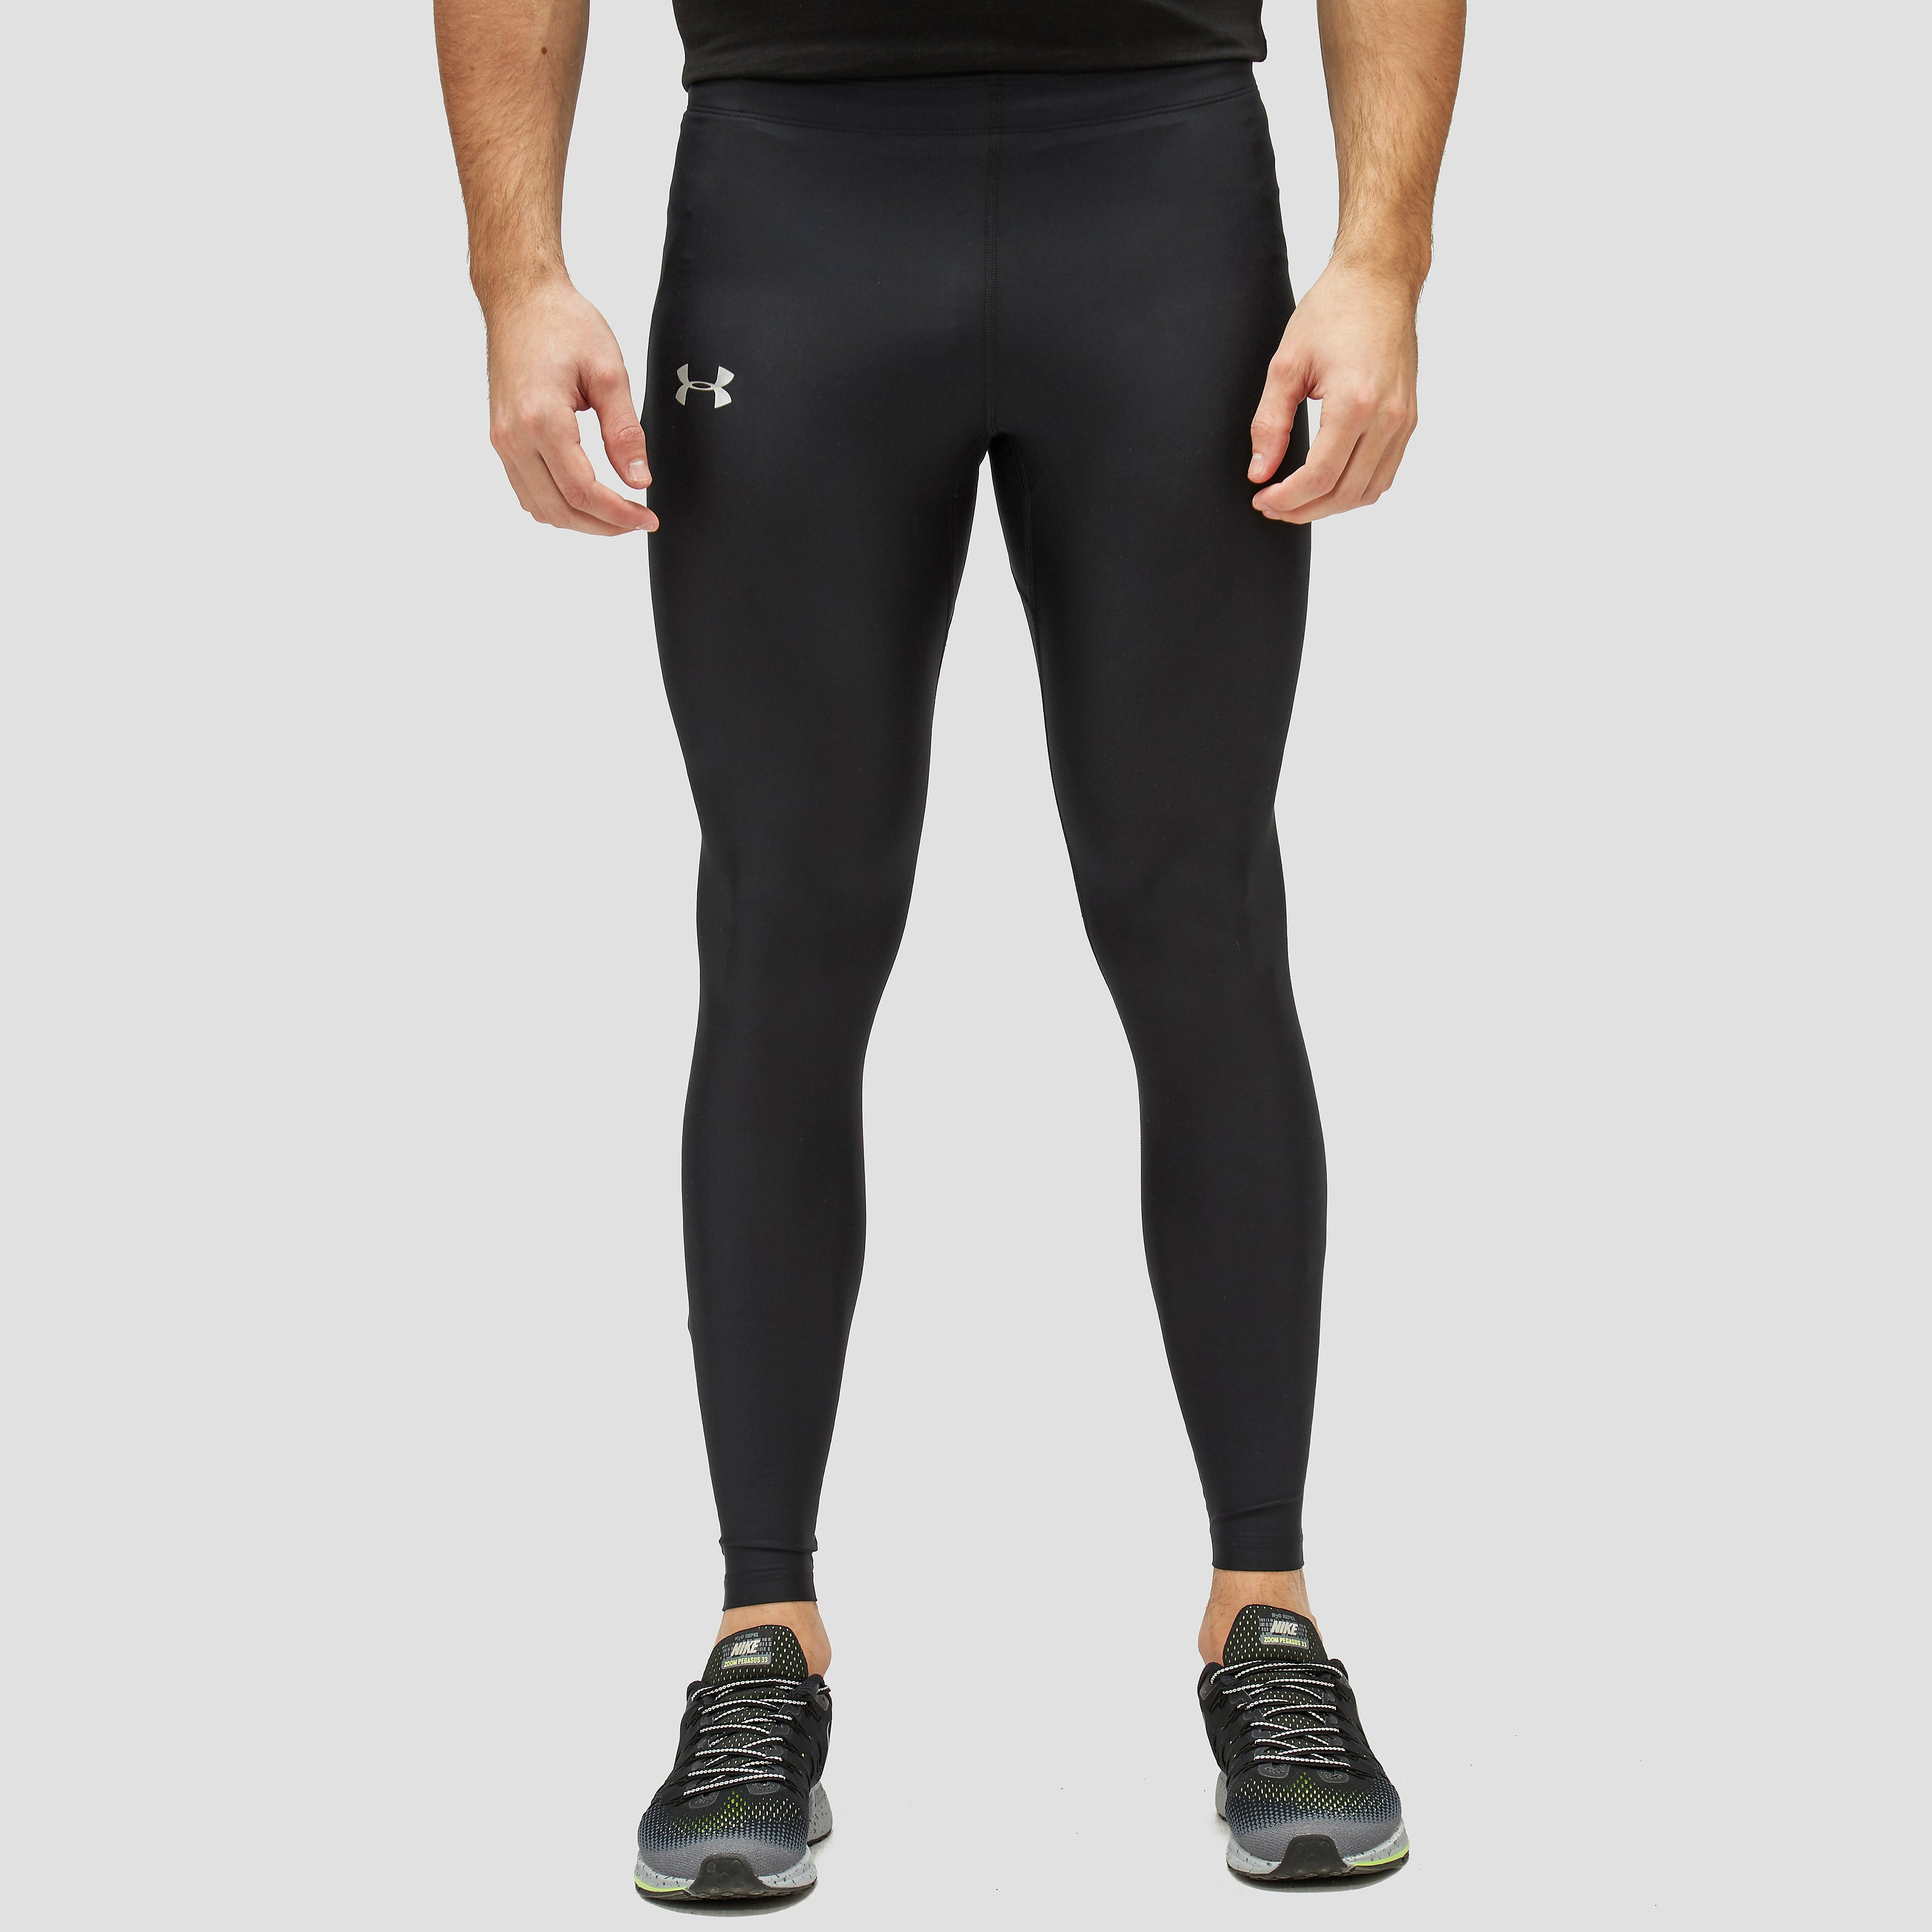 UNDER ARMOUR HEATGEAR HARDLOOPTIGHT ZWART HEREN